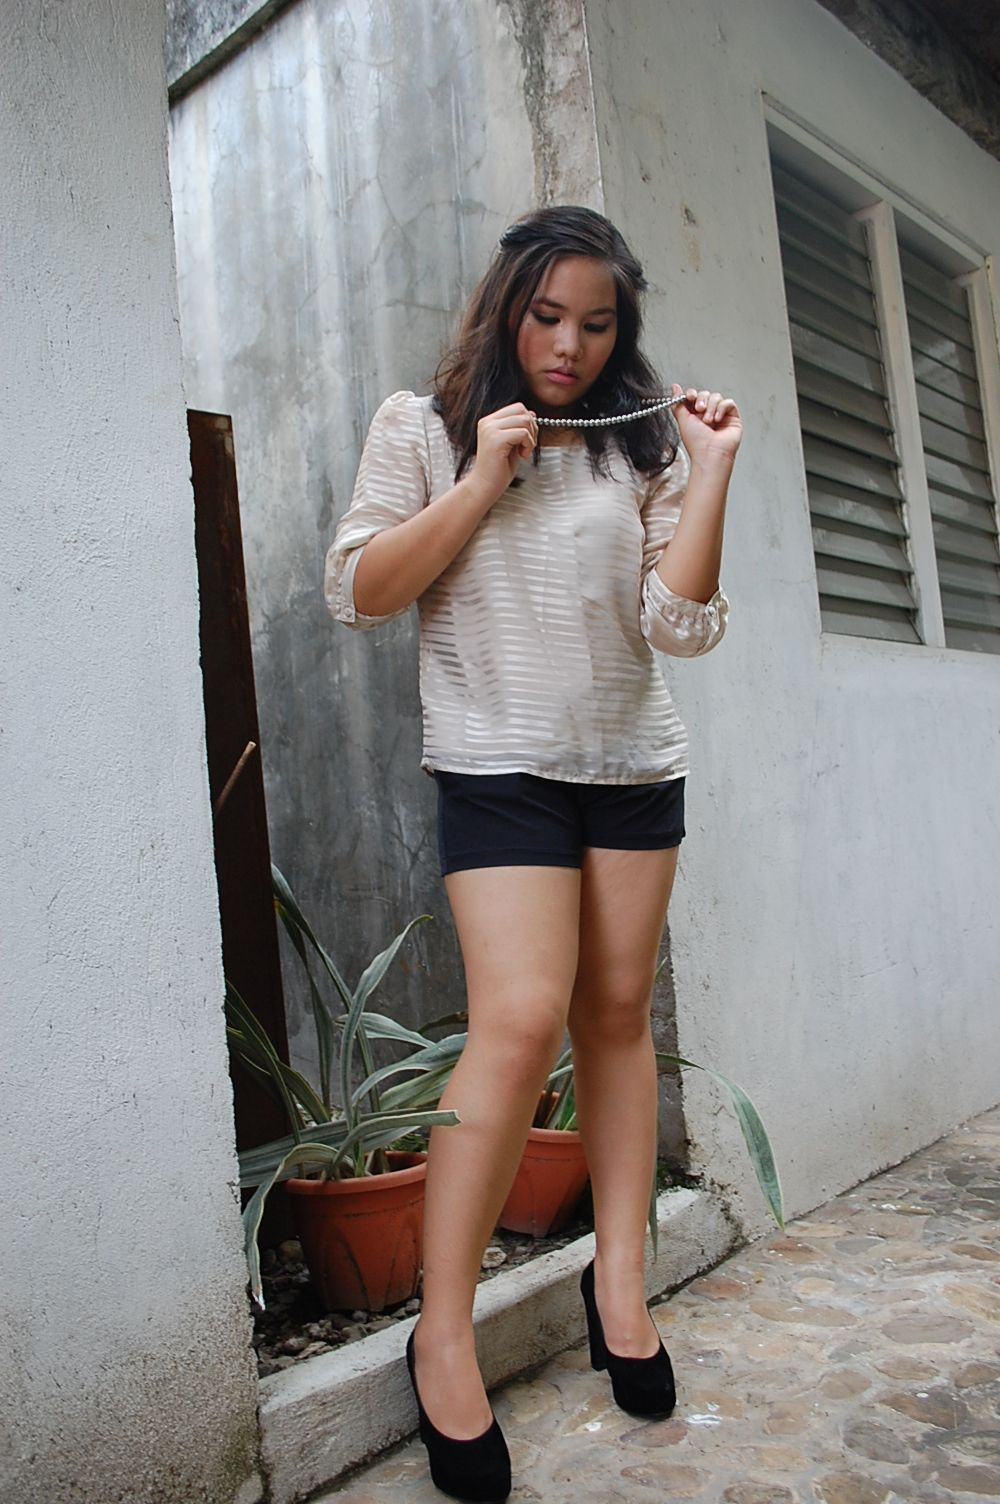 shorts from Hurley. top from H.